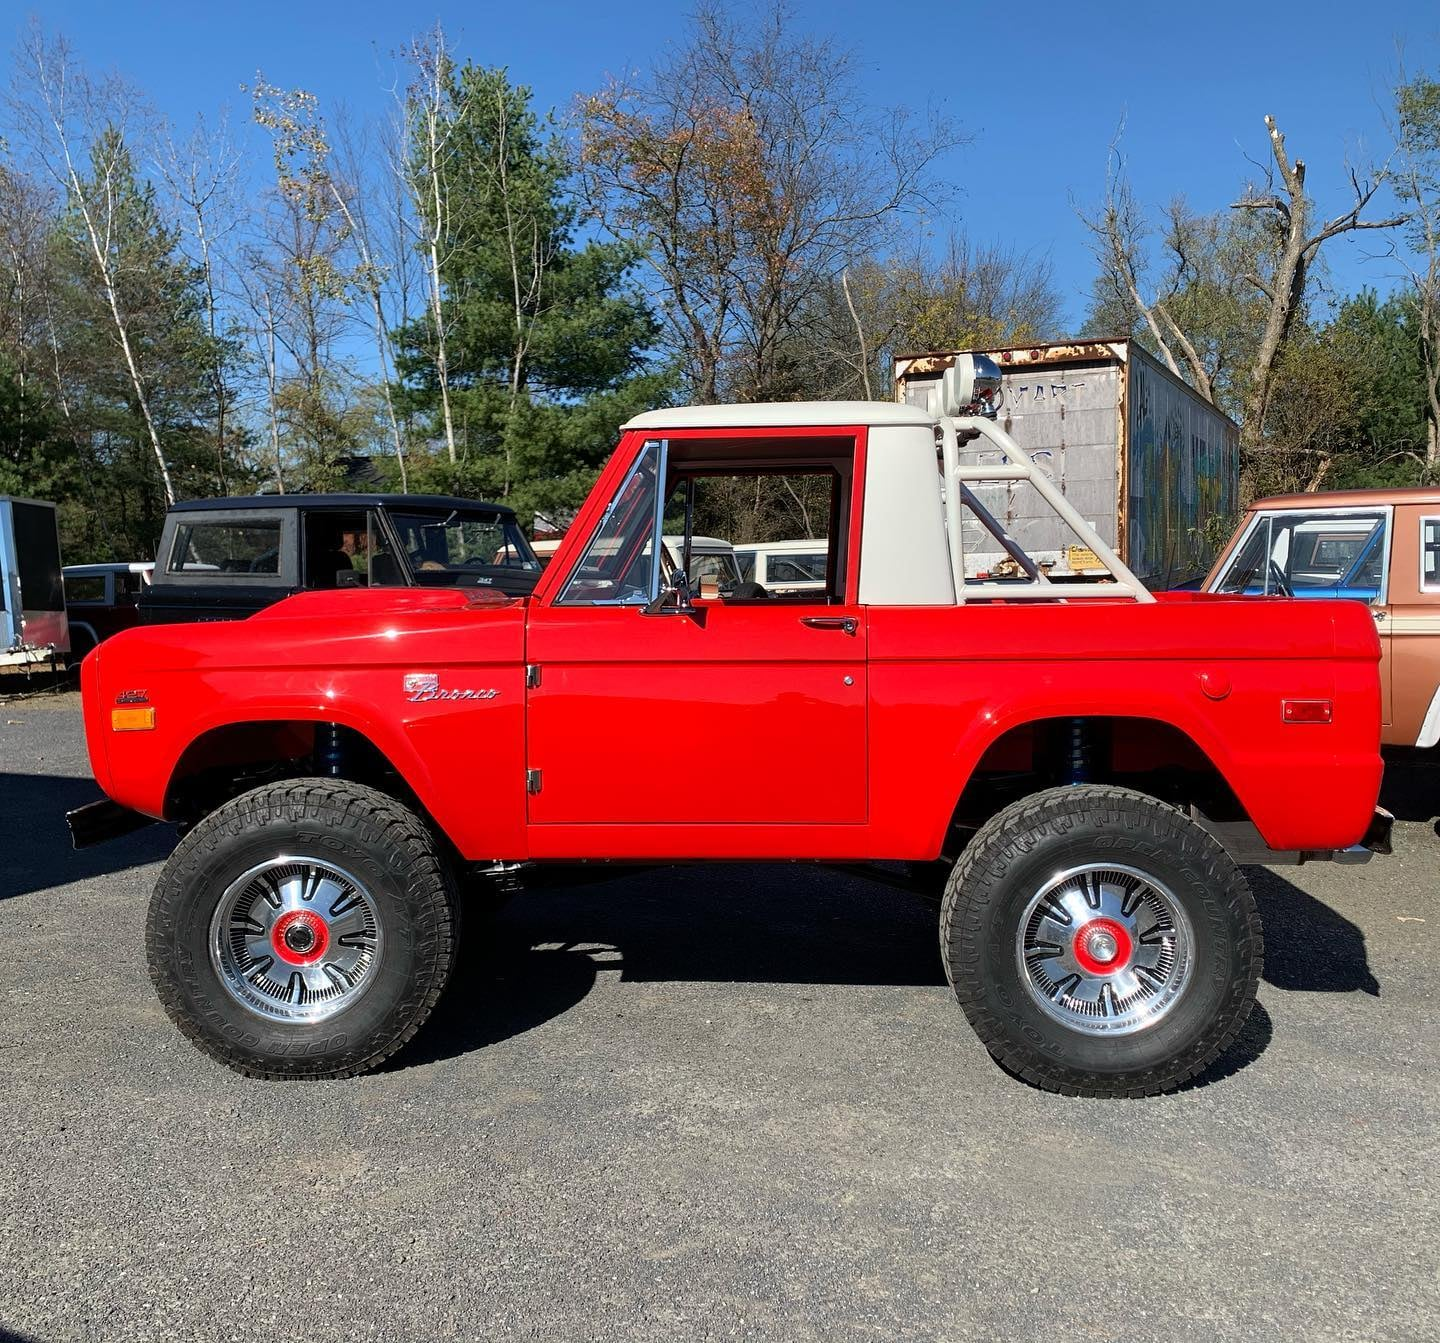 LAL-Customs-Ford-Bronco-Restoration-T-Man-Build-9